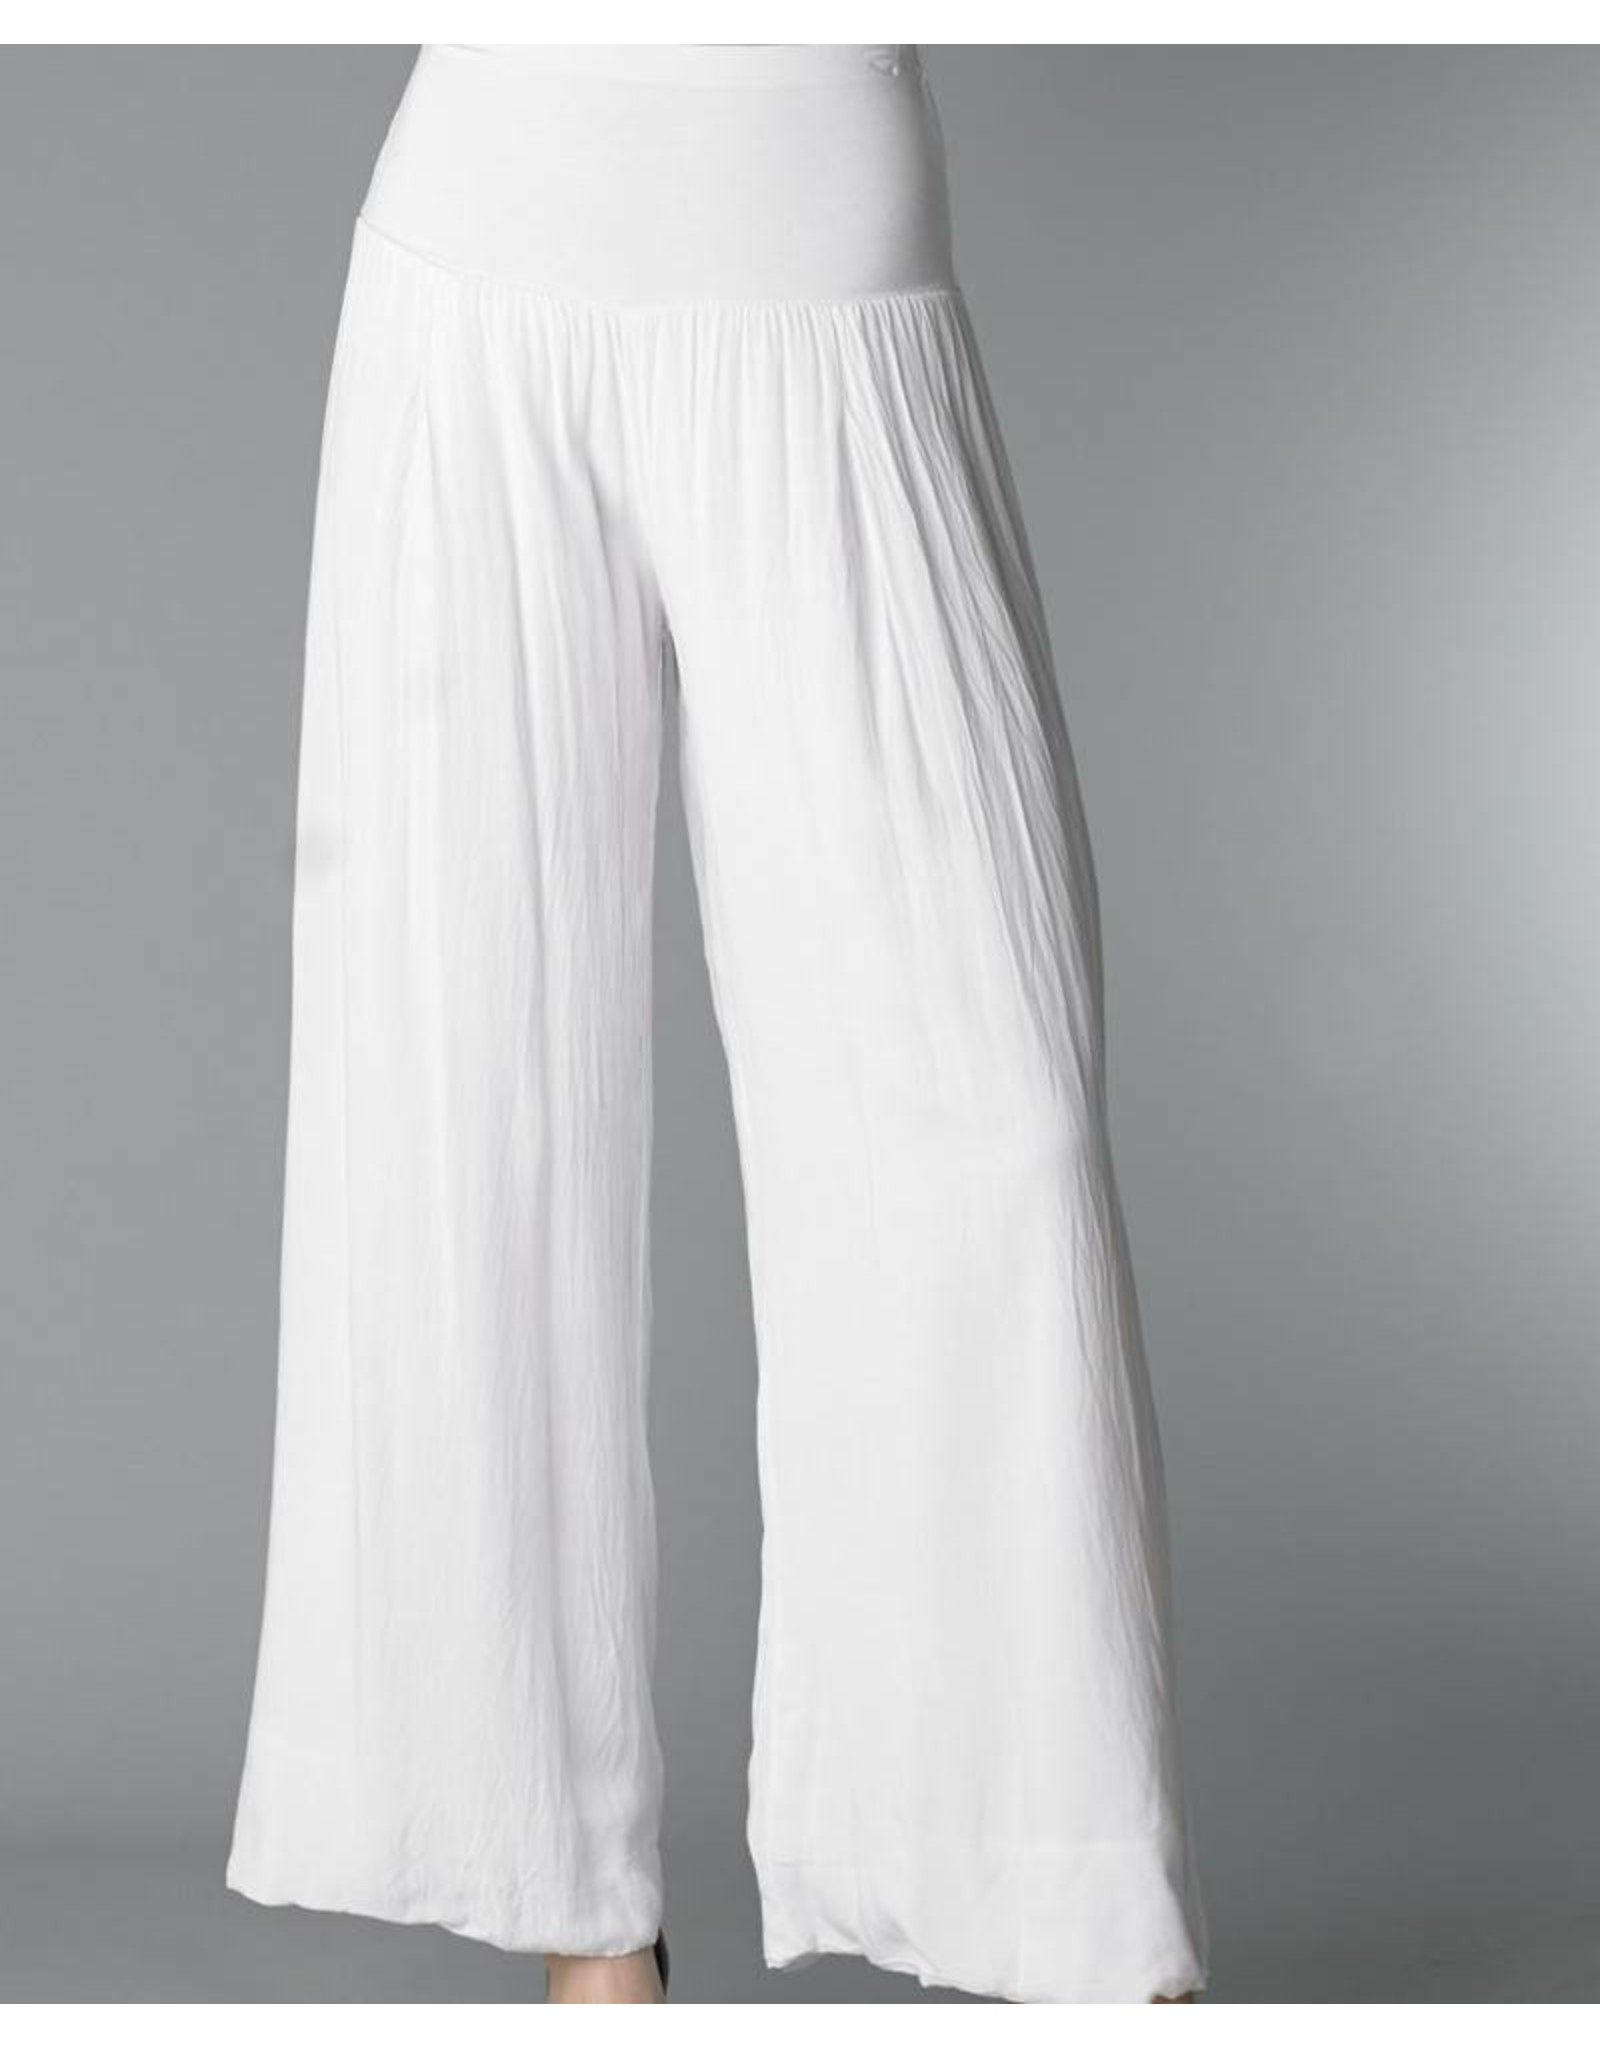 White Silk Lined Pants